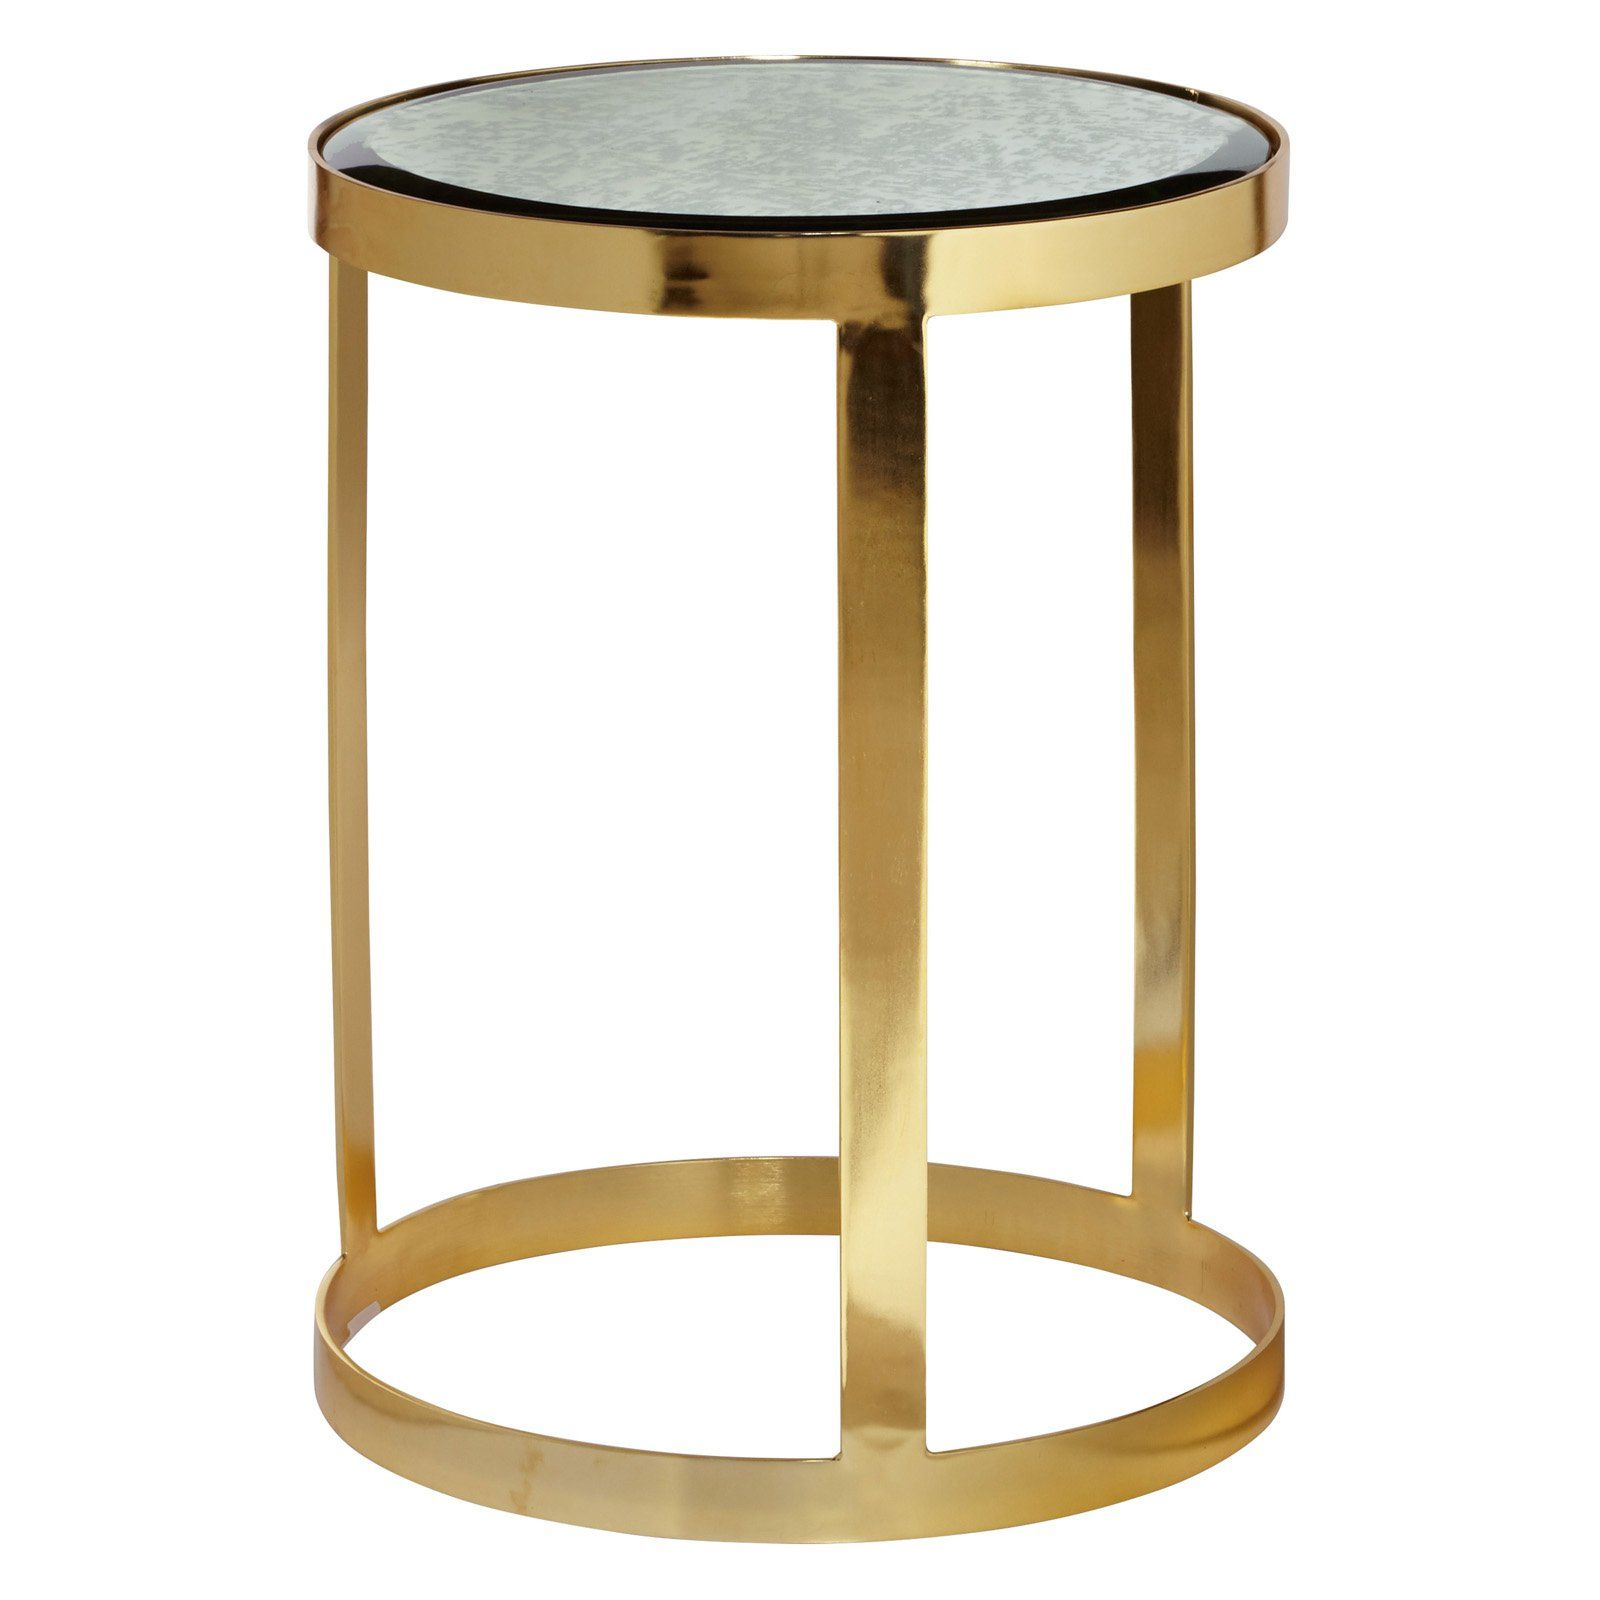 pulaski gold and marble accent table products small ashley furniture lift coffee white patio silver end tables dark cherry affordable nightstands bedside under wine cupboard grey